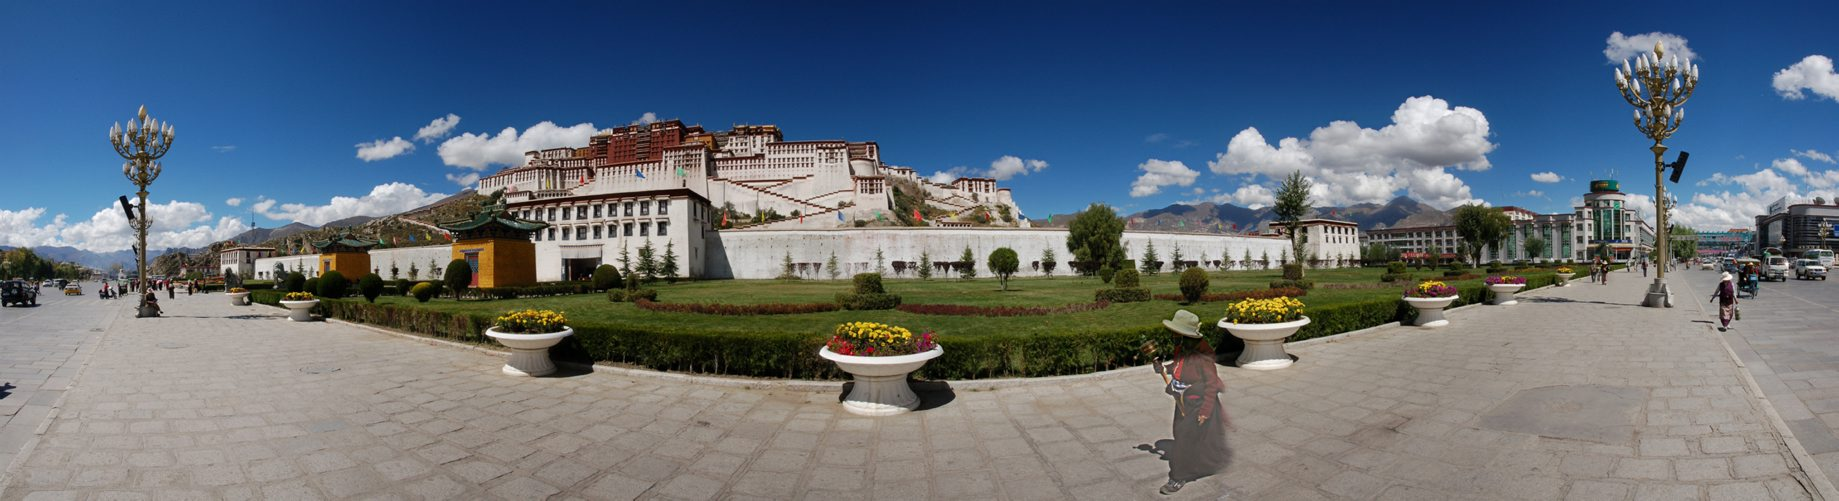 China, Tibet, Lhasa, 3650m, Potala Palace